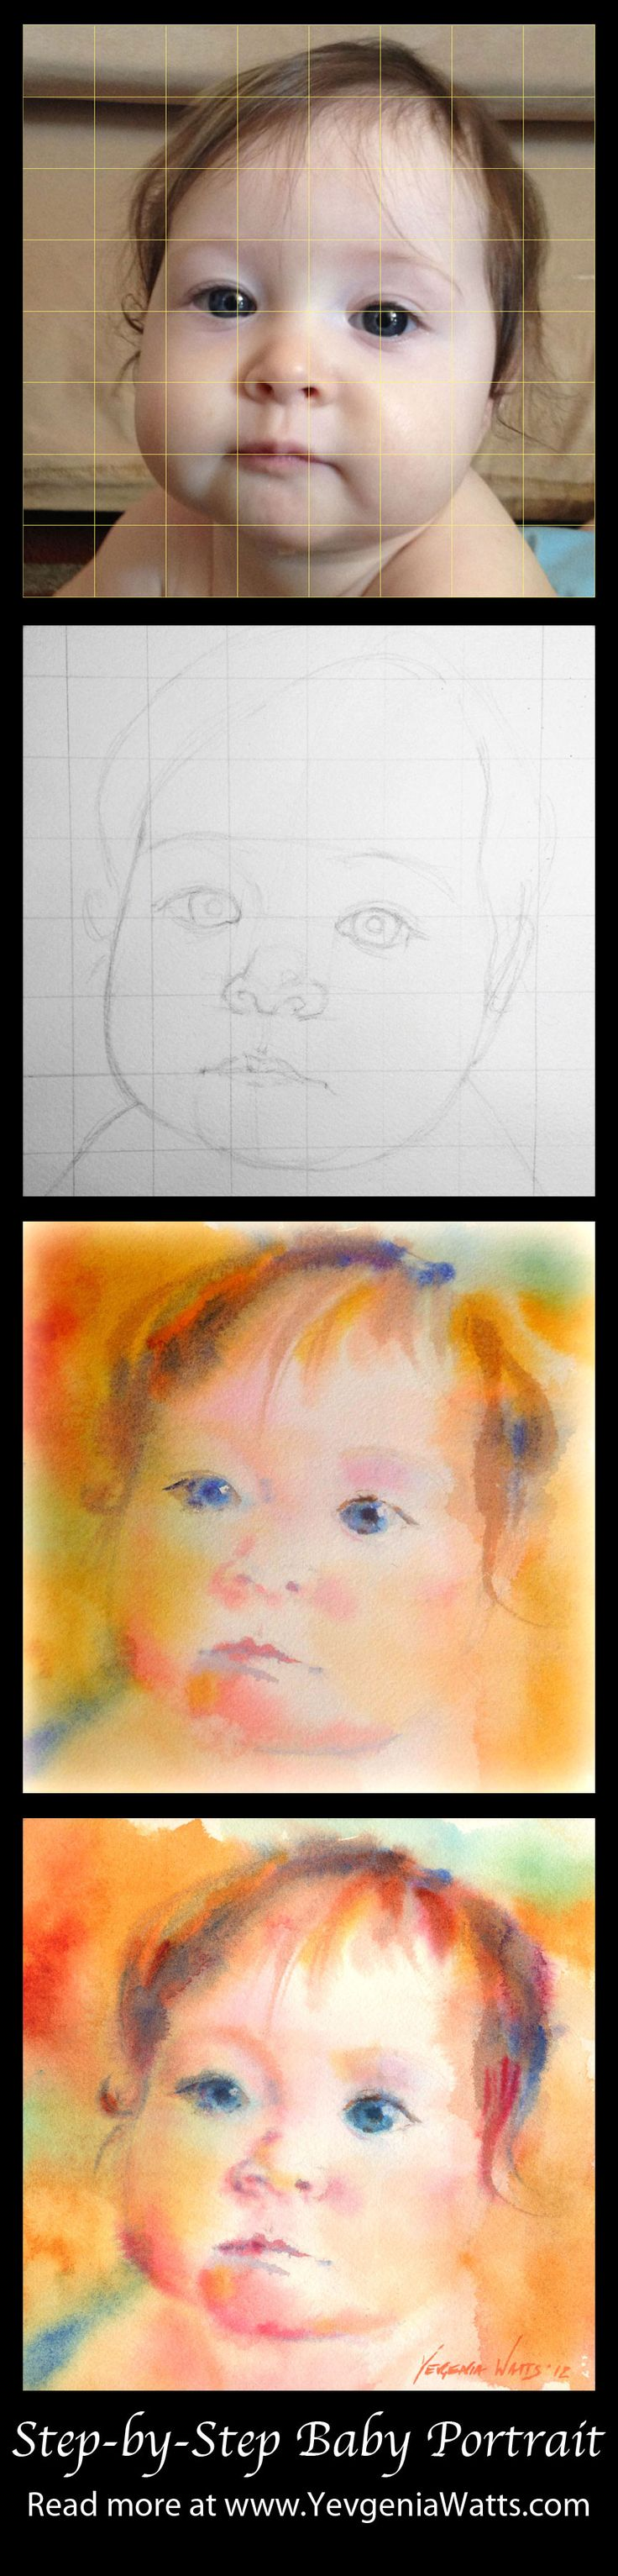 Step-by-step baby portrait painting. how to tutorial